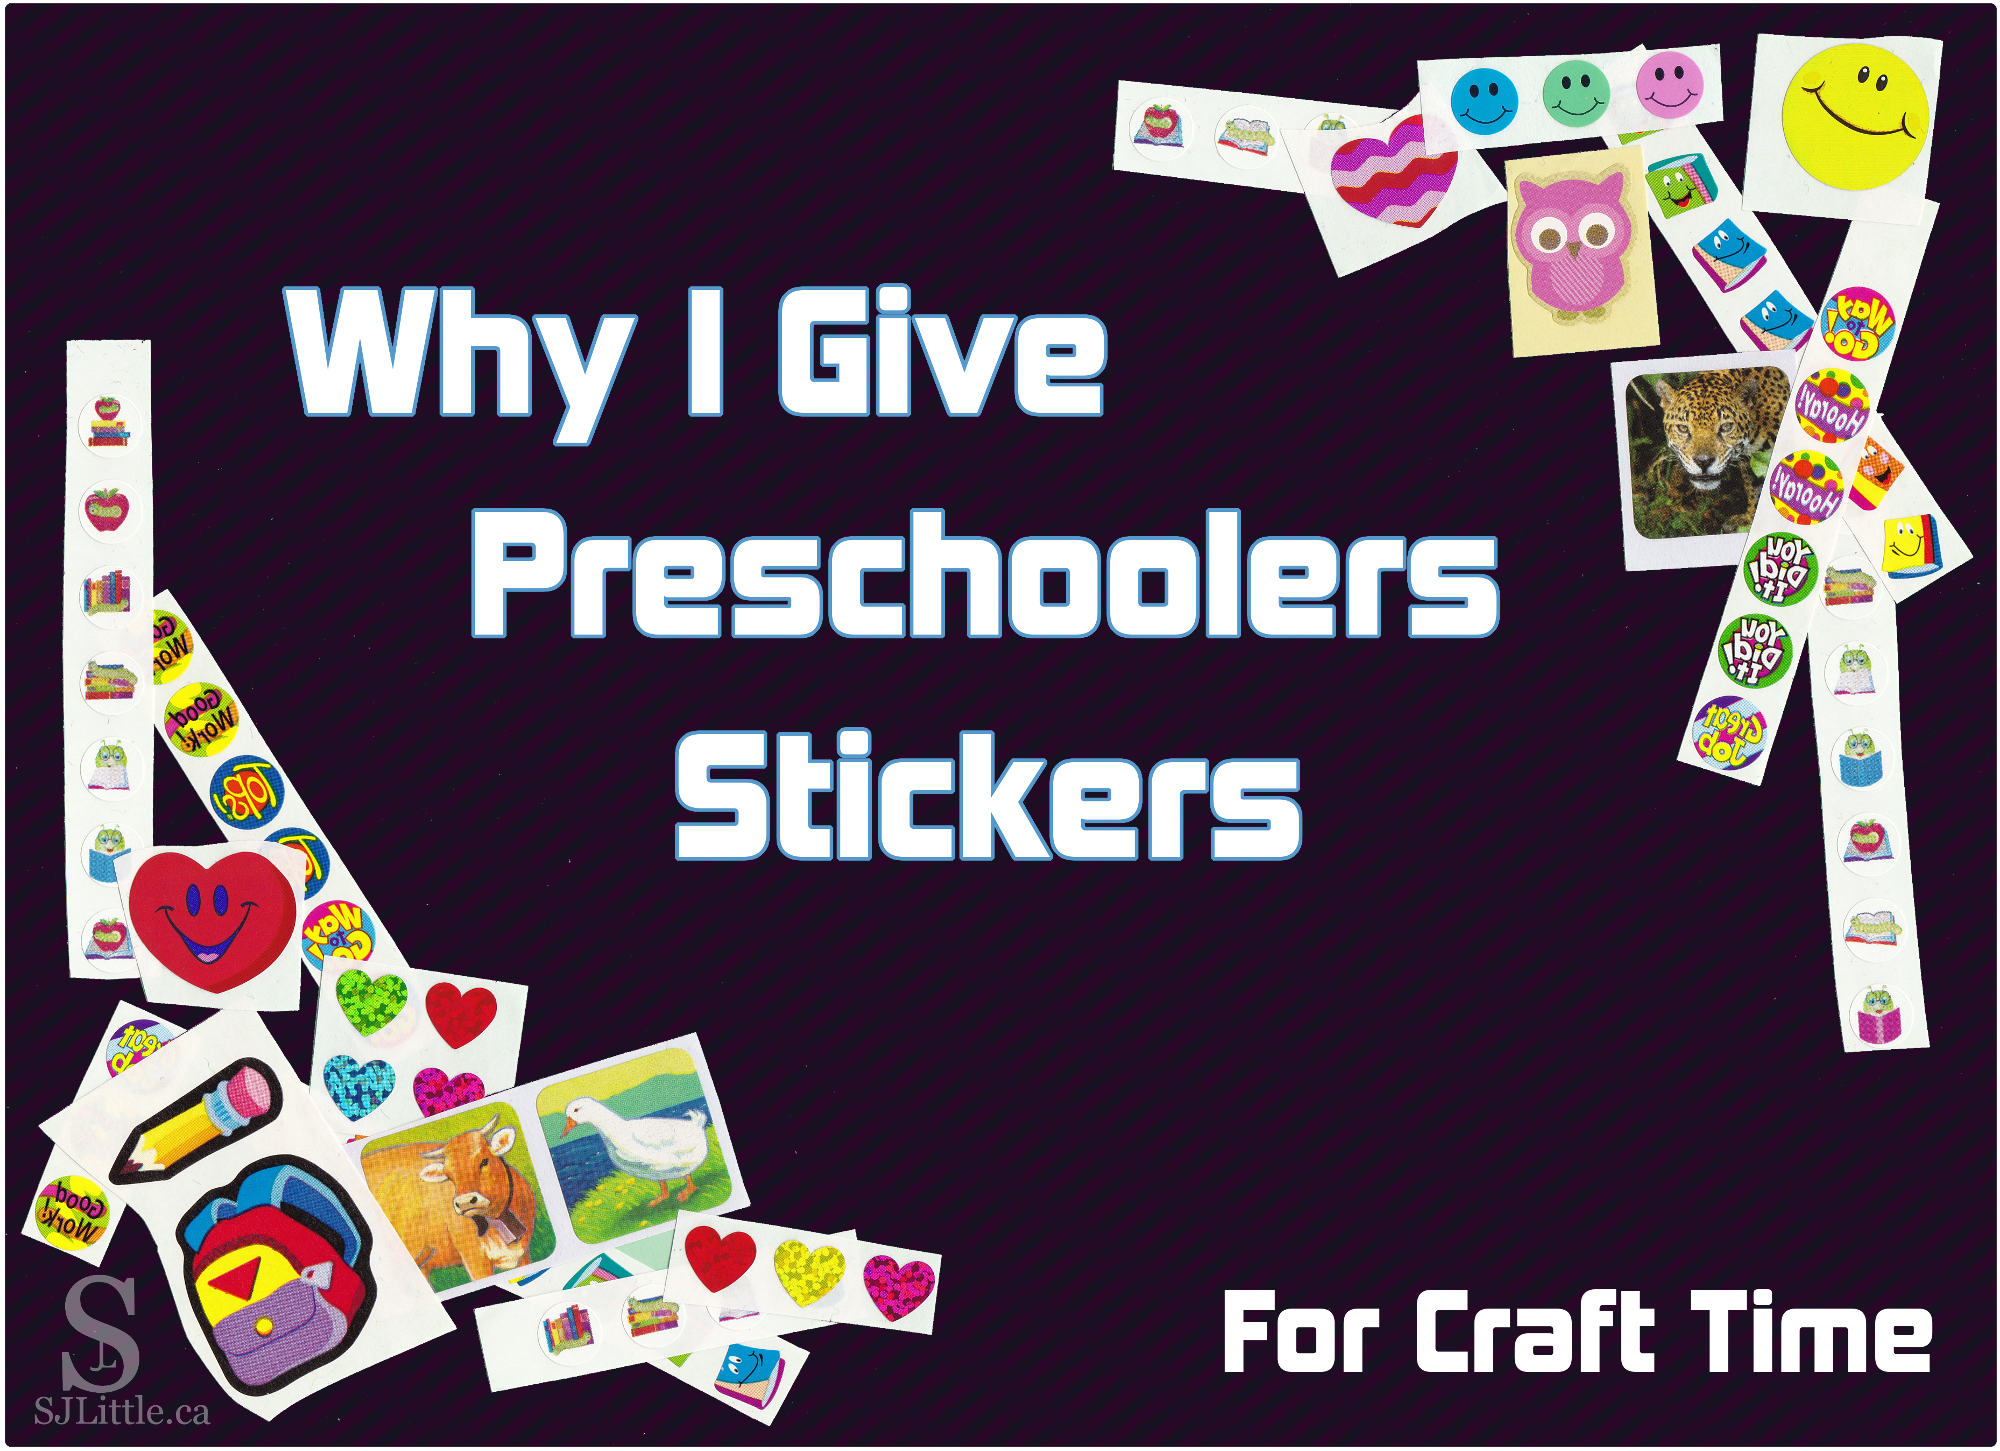 Why I Give Preschoolers Stickers for Craft Time - post by S. J. Little